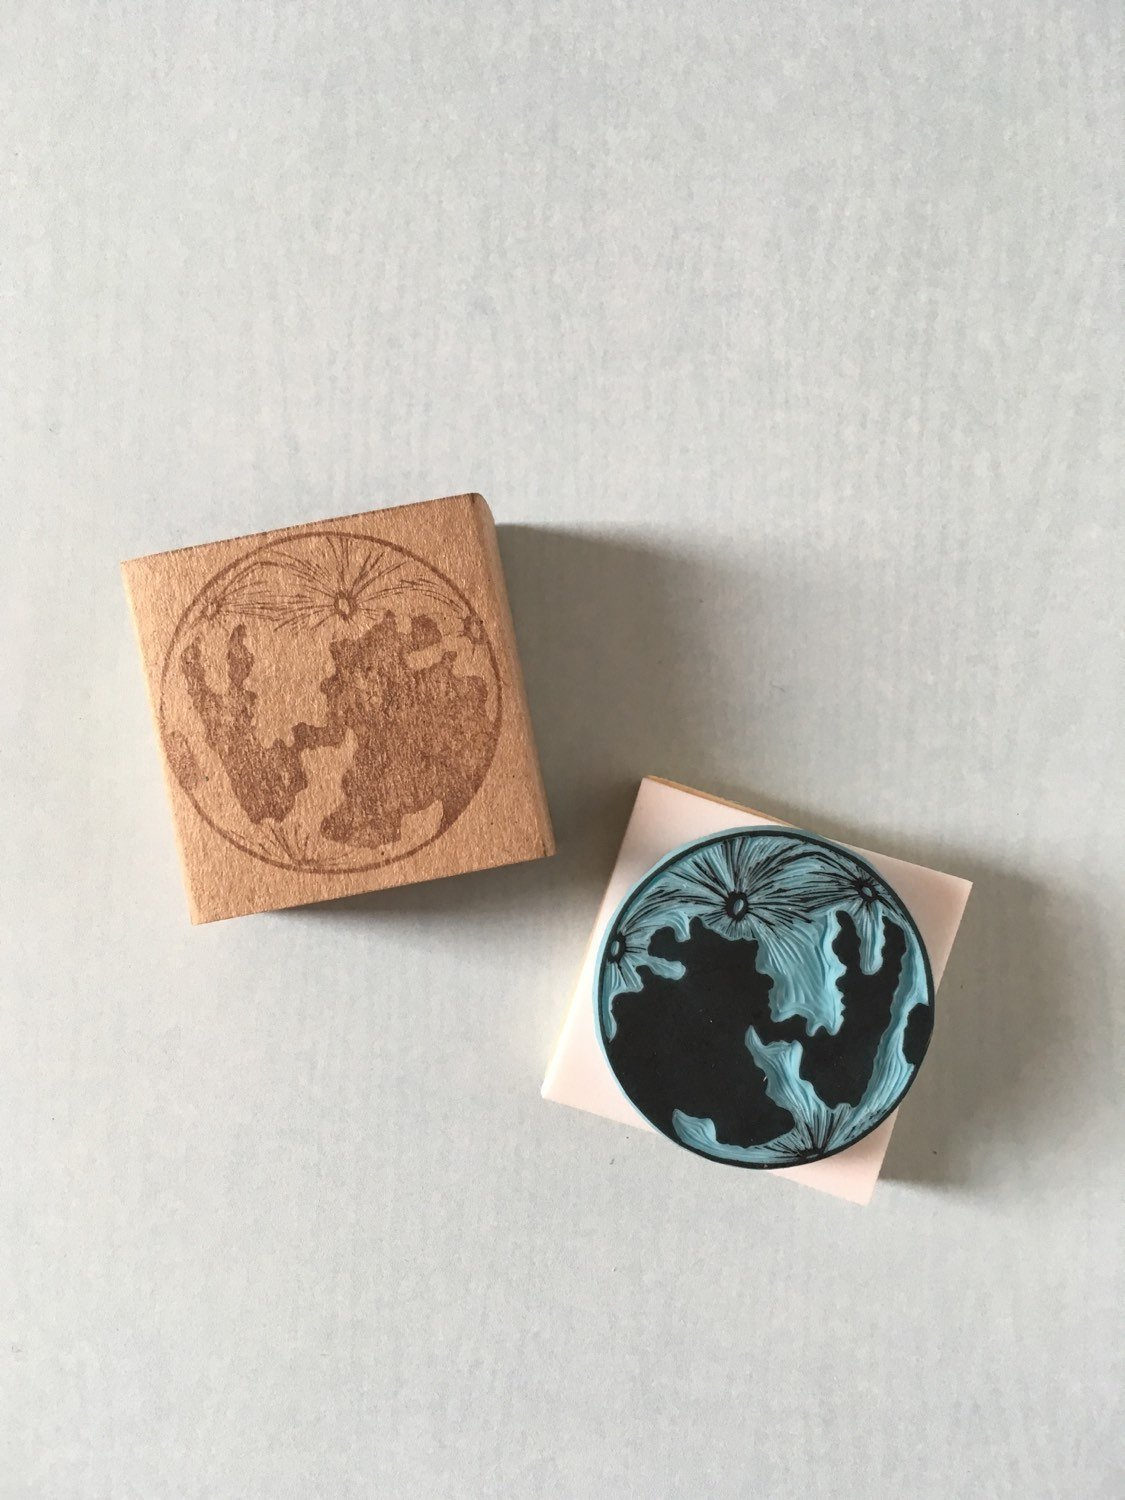 An adorable moon stamp carved by CassaStamps on Etsy